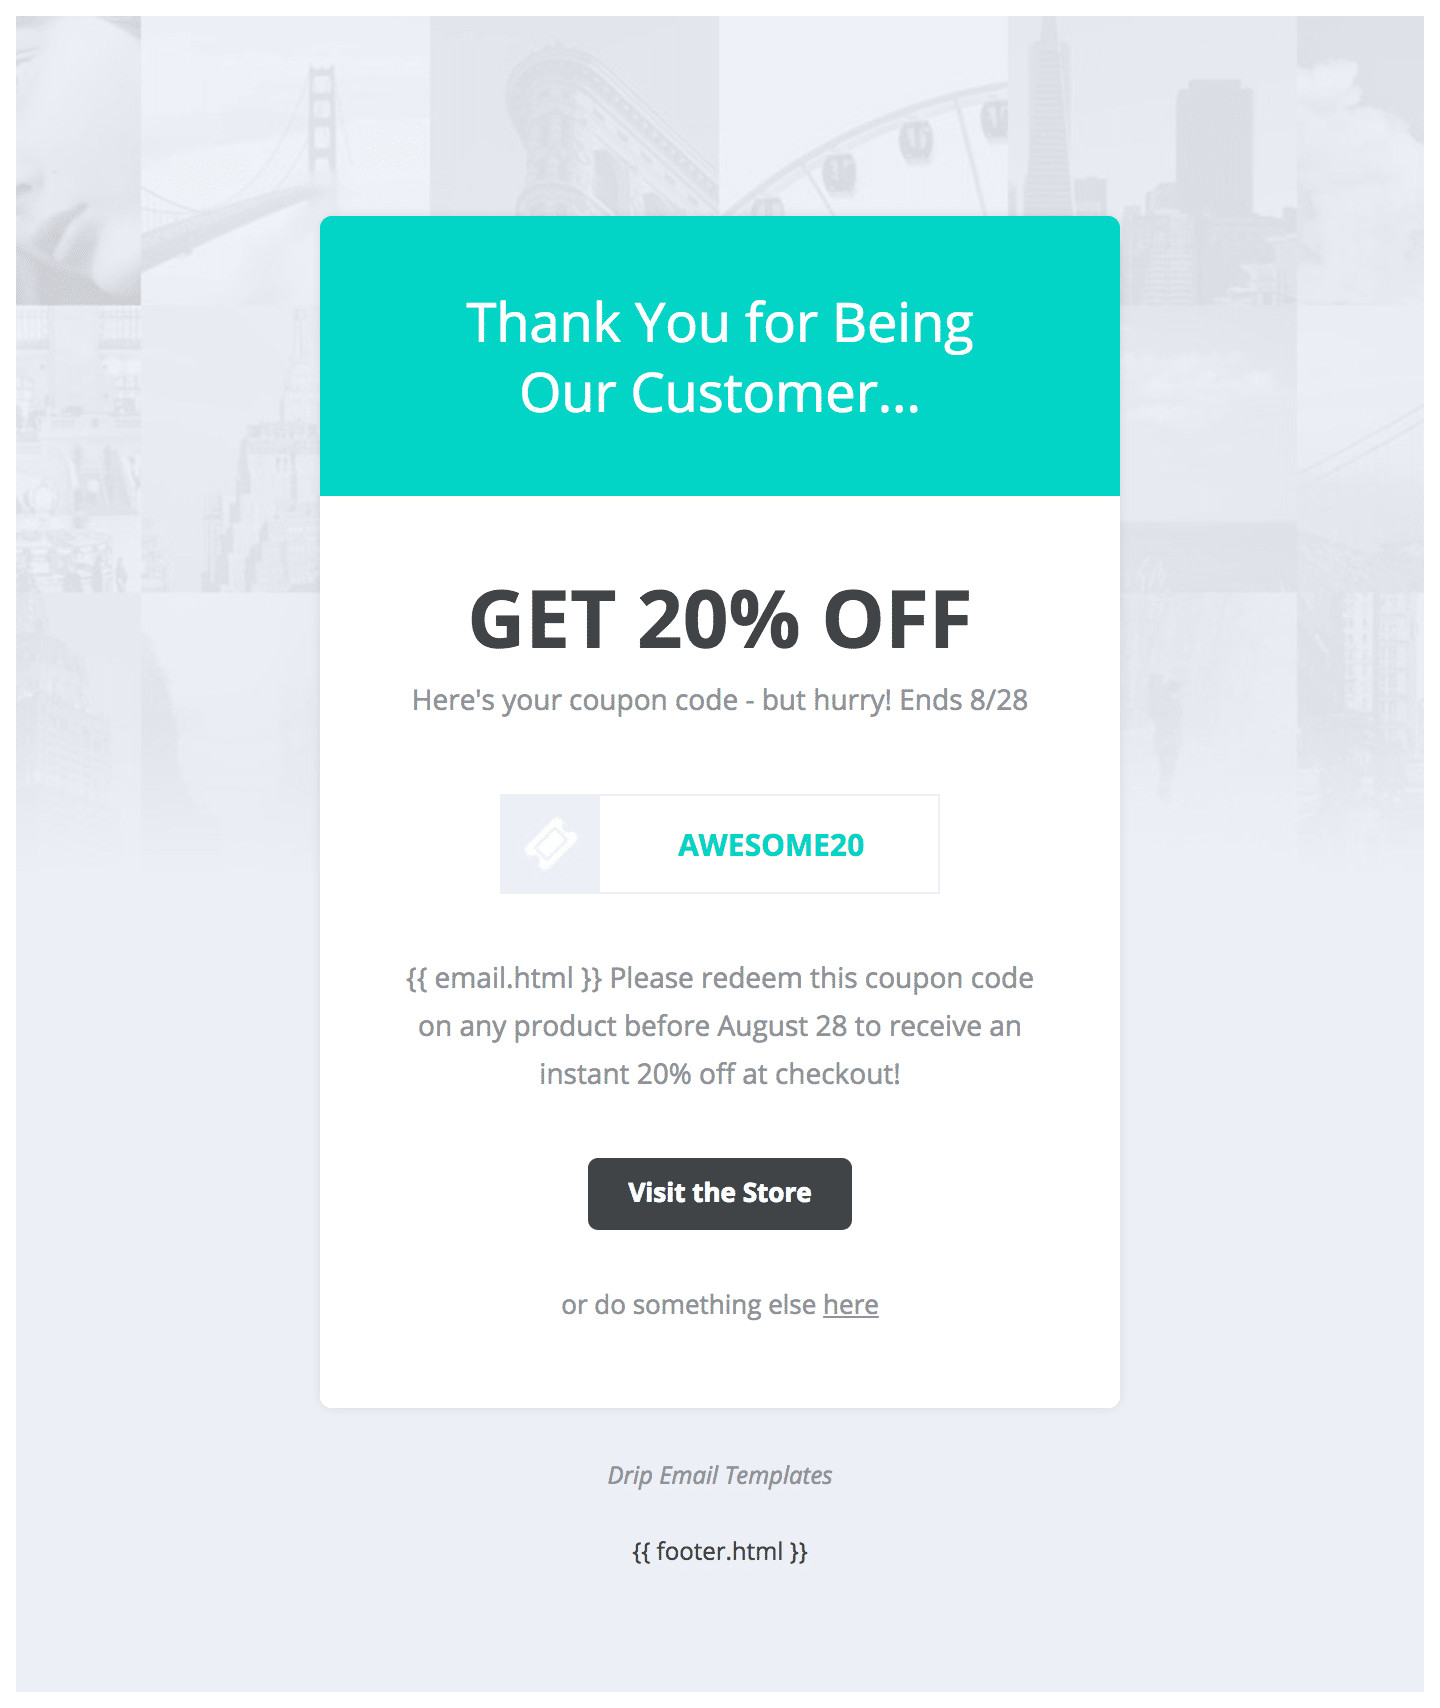 Free Email Coupon Template Drip Email Templates Easy to Import Drip Email Templates